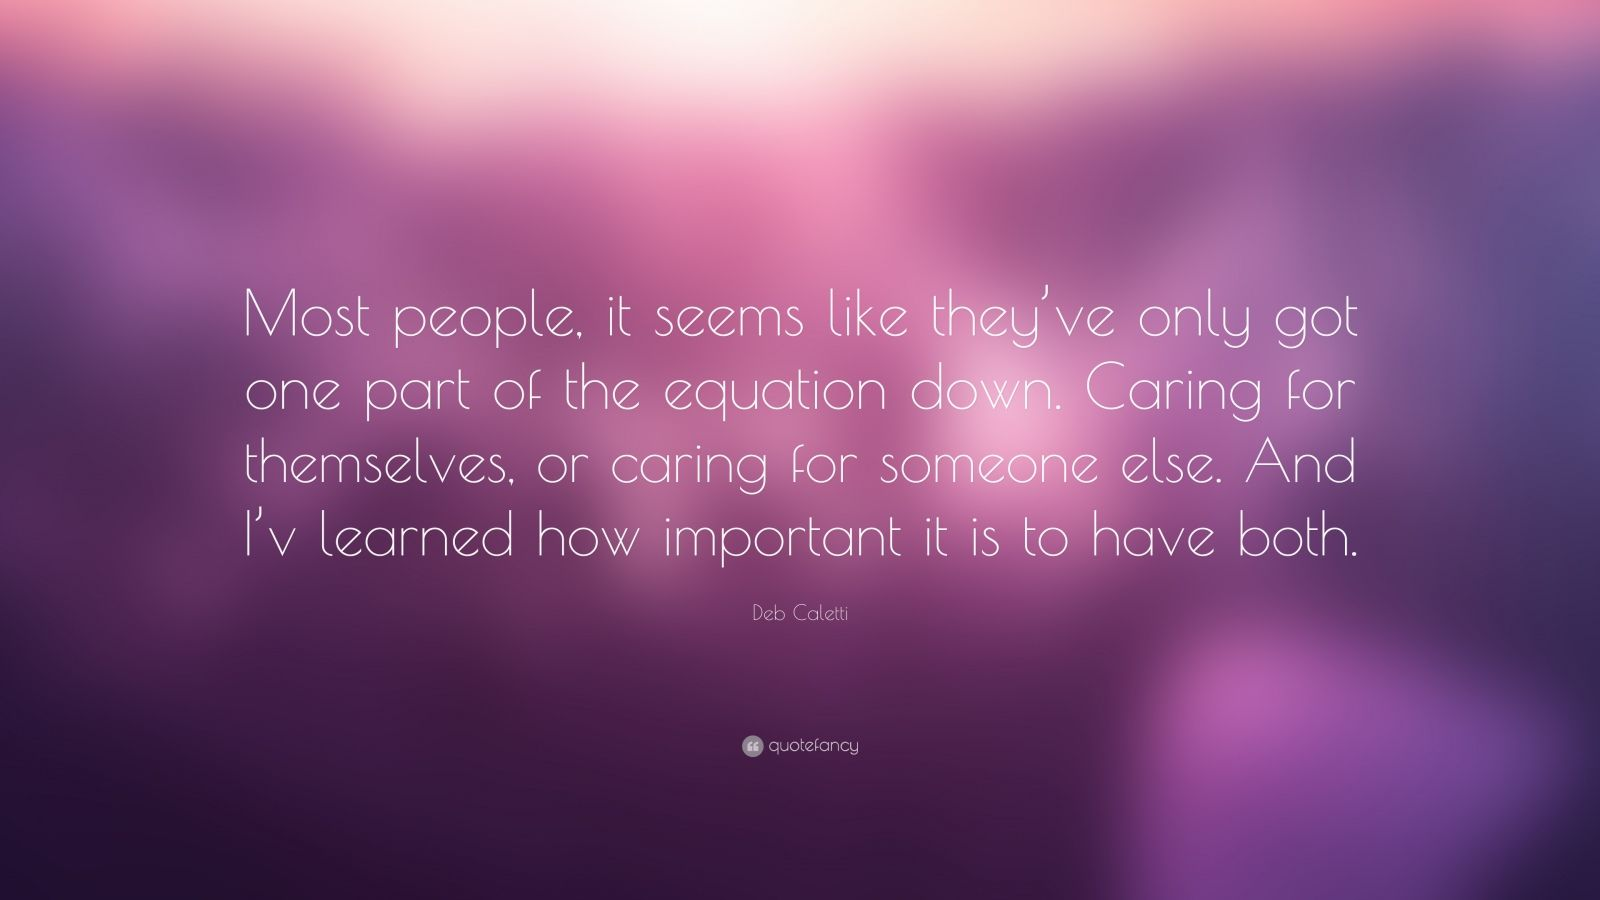 """Deb Caletti Quote: """"Most people, it seems like they've only got one part of the equation down. Caring for themselves, or caring for someone else. And I'v learned how important it is to have both."""""""